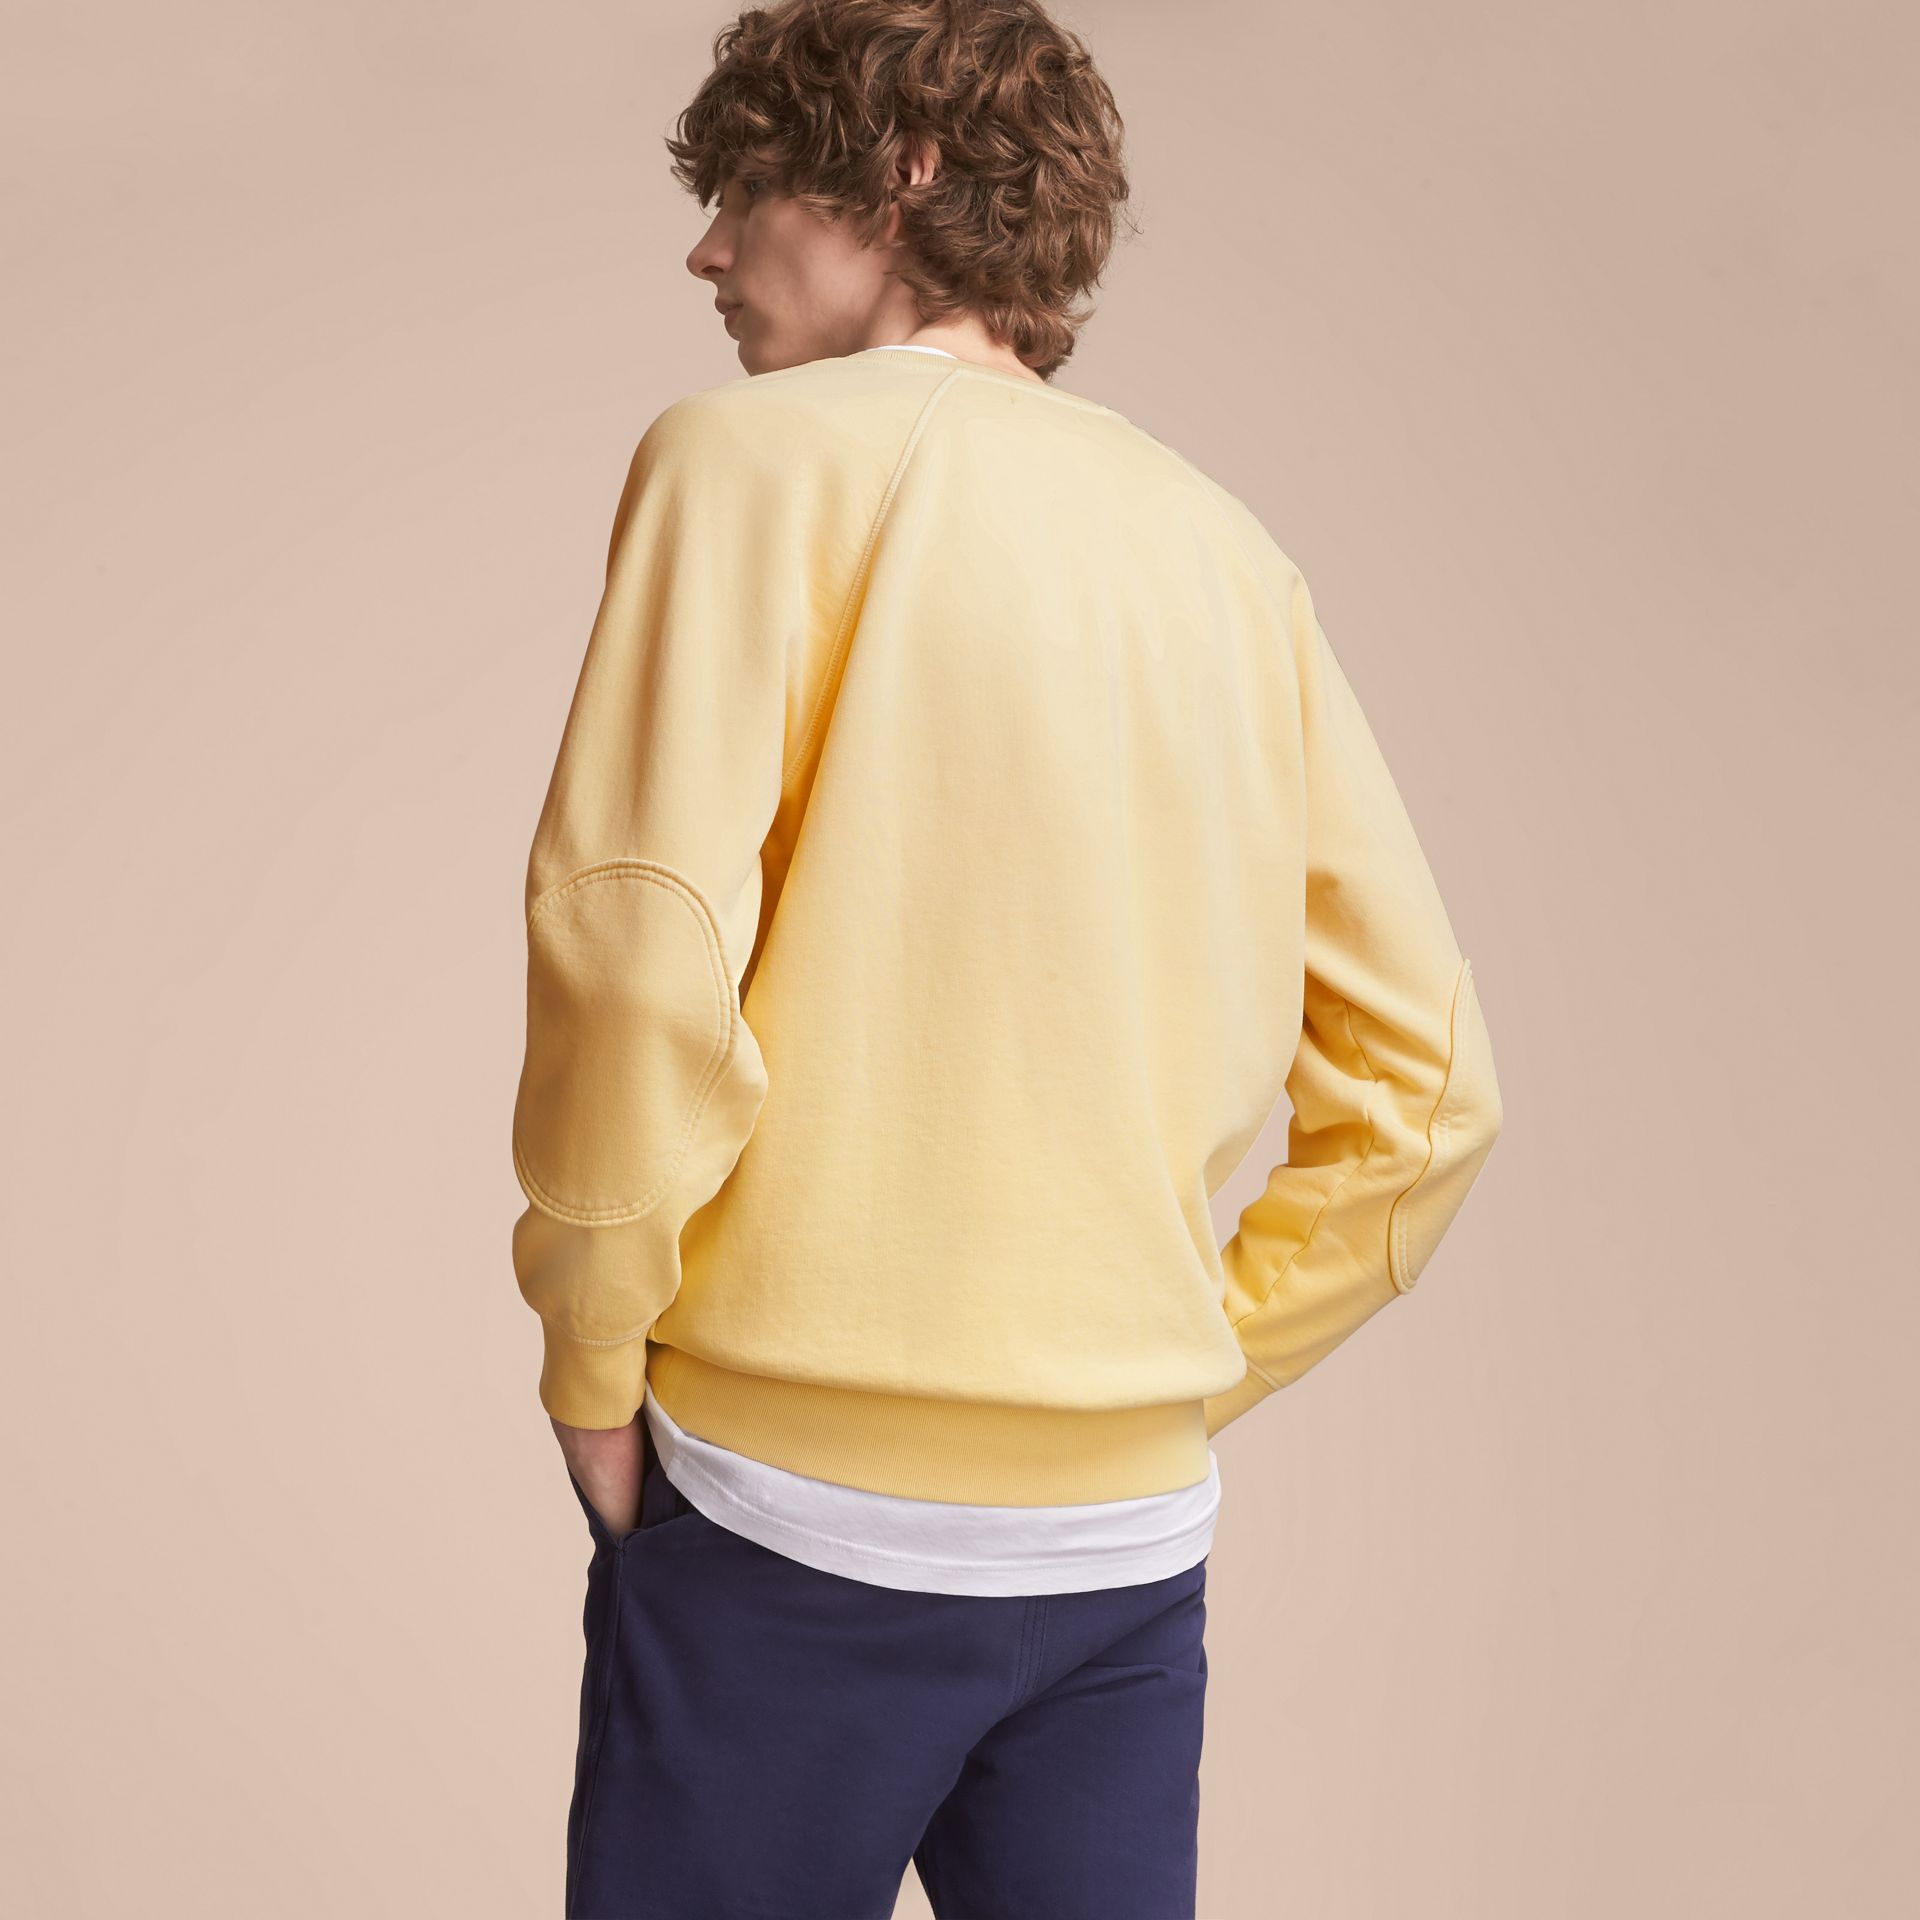 Unisex Pigment-dyed Cotton Oversize Sweatshirt in Pale Yellow - Men | Burberry - gallery image 3